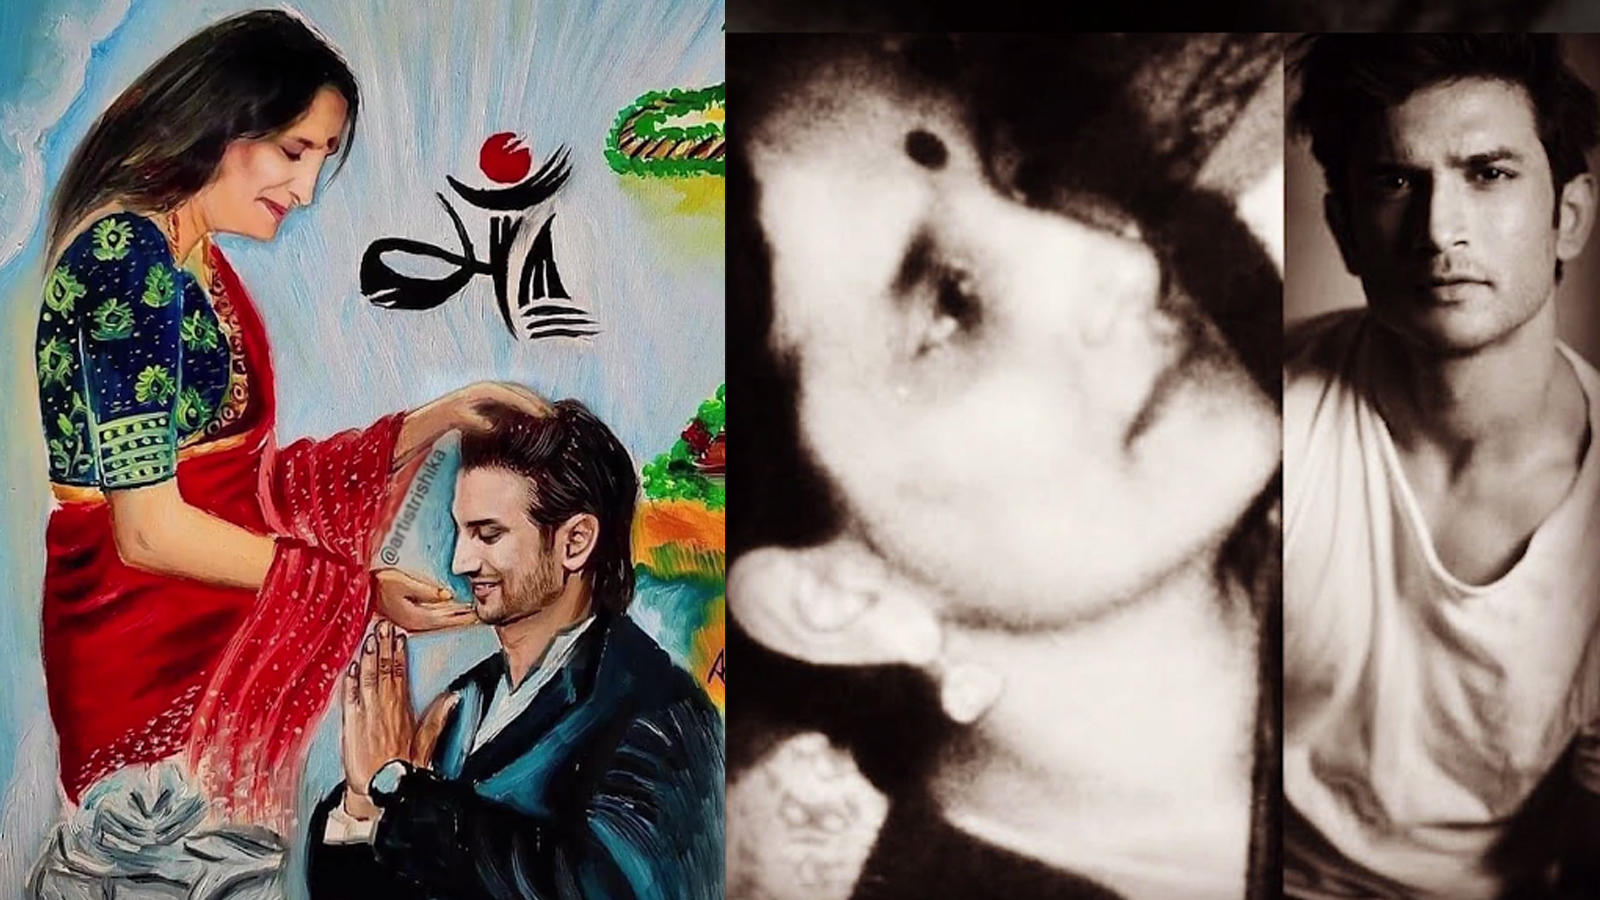 meetu-singh-shares-a-fan-art-of-sushant-singh-rajput-with-his-mother-leaving-fans-teary-eyed-writes-unable-to-cope-up-with-this-heart-wrenching-loss